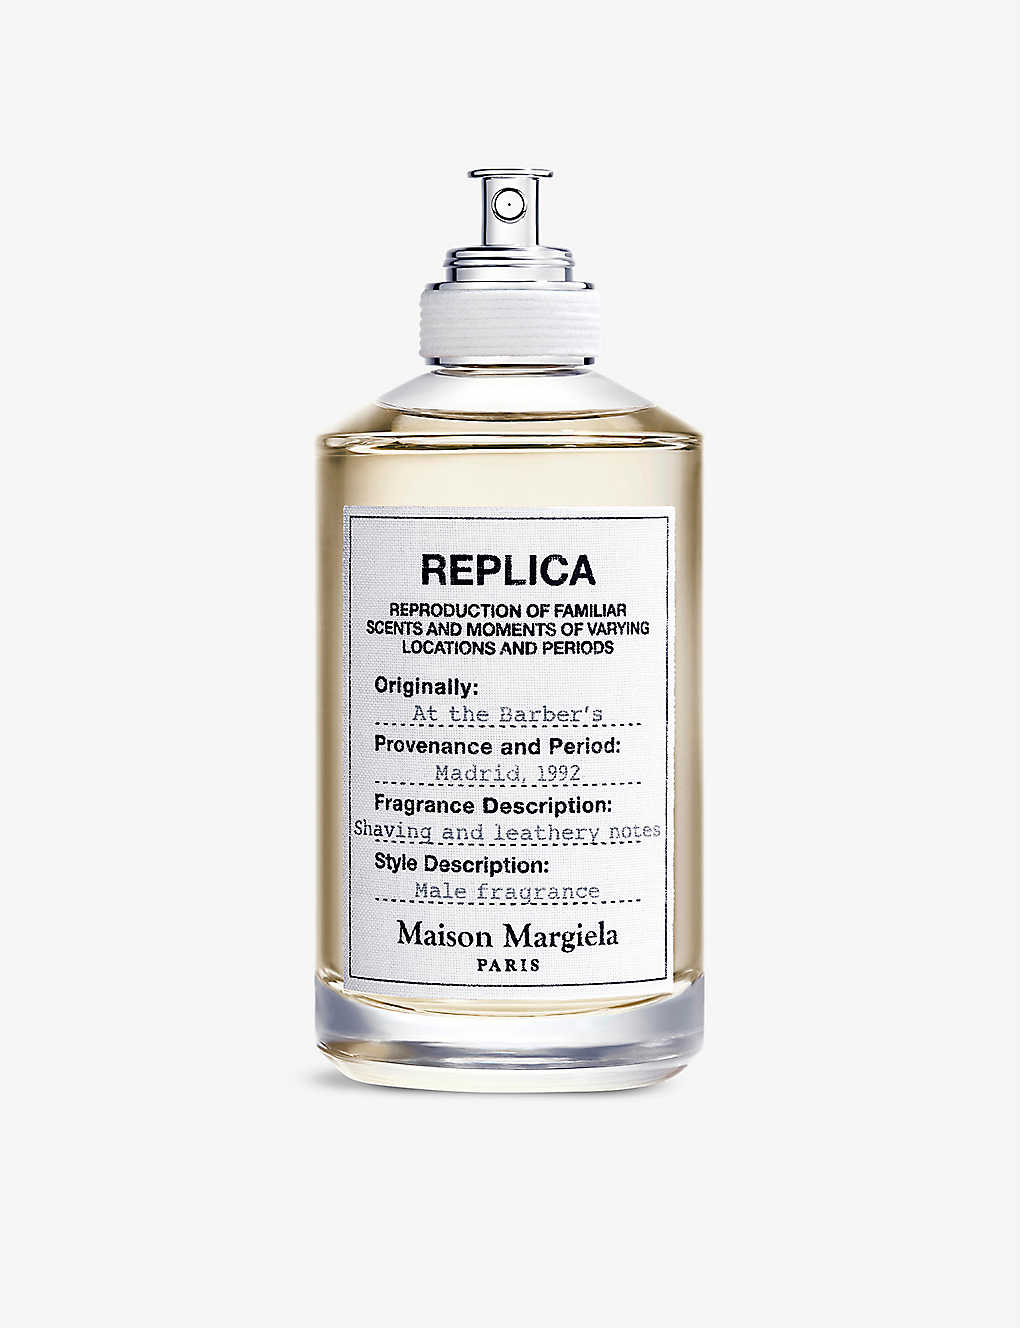 Replica At the Barber's eau de toilette 100ml